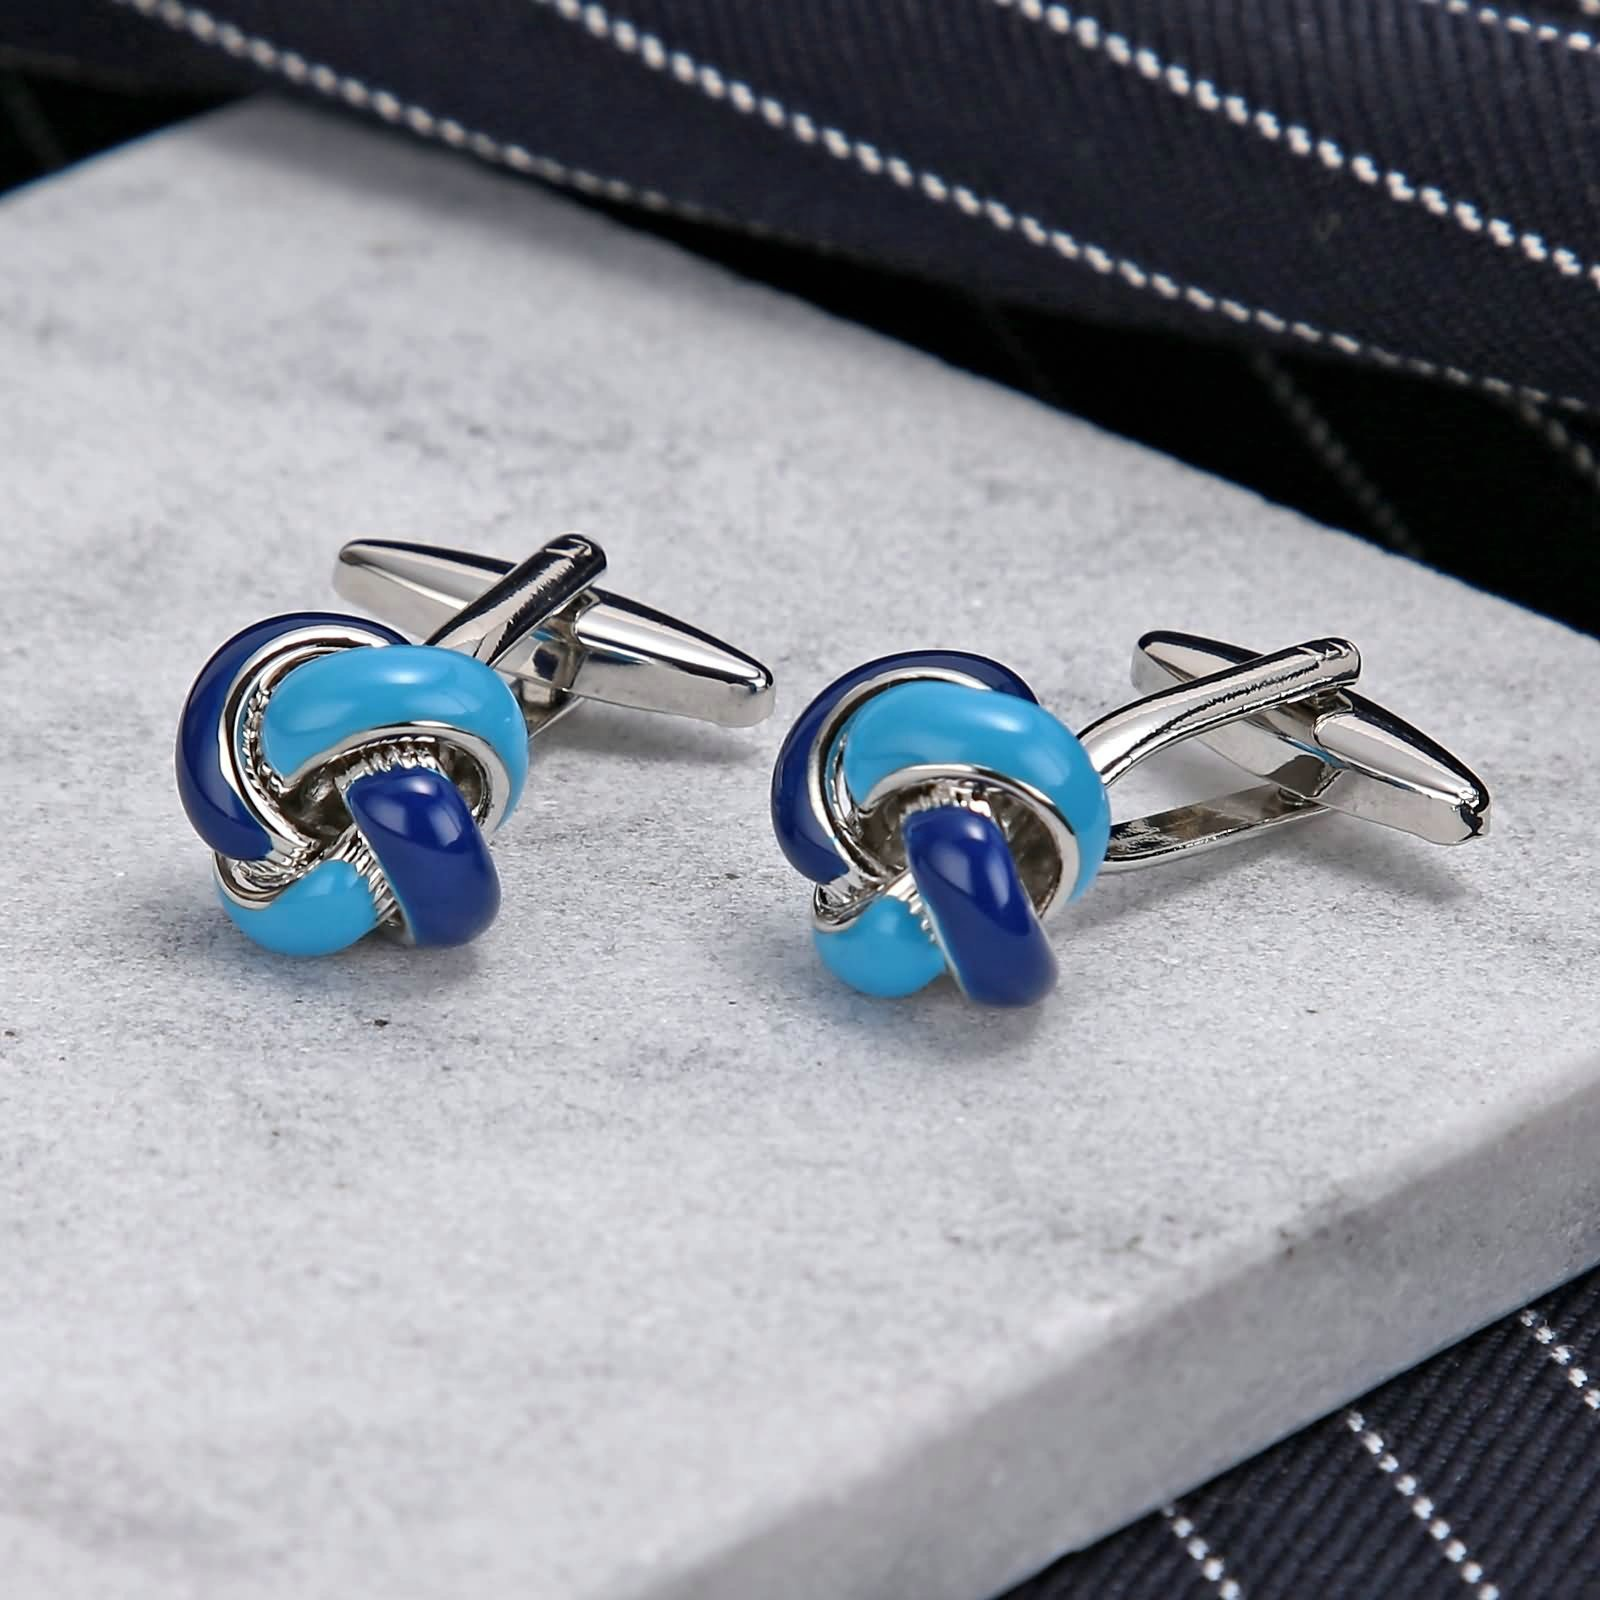 Aokarry Cufflinks-Men's Stainless Steel Love Knot Cuff Links Blue by Aokarry (Image #3)